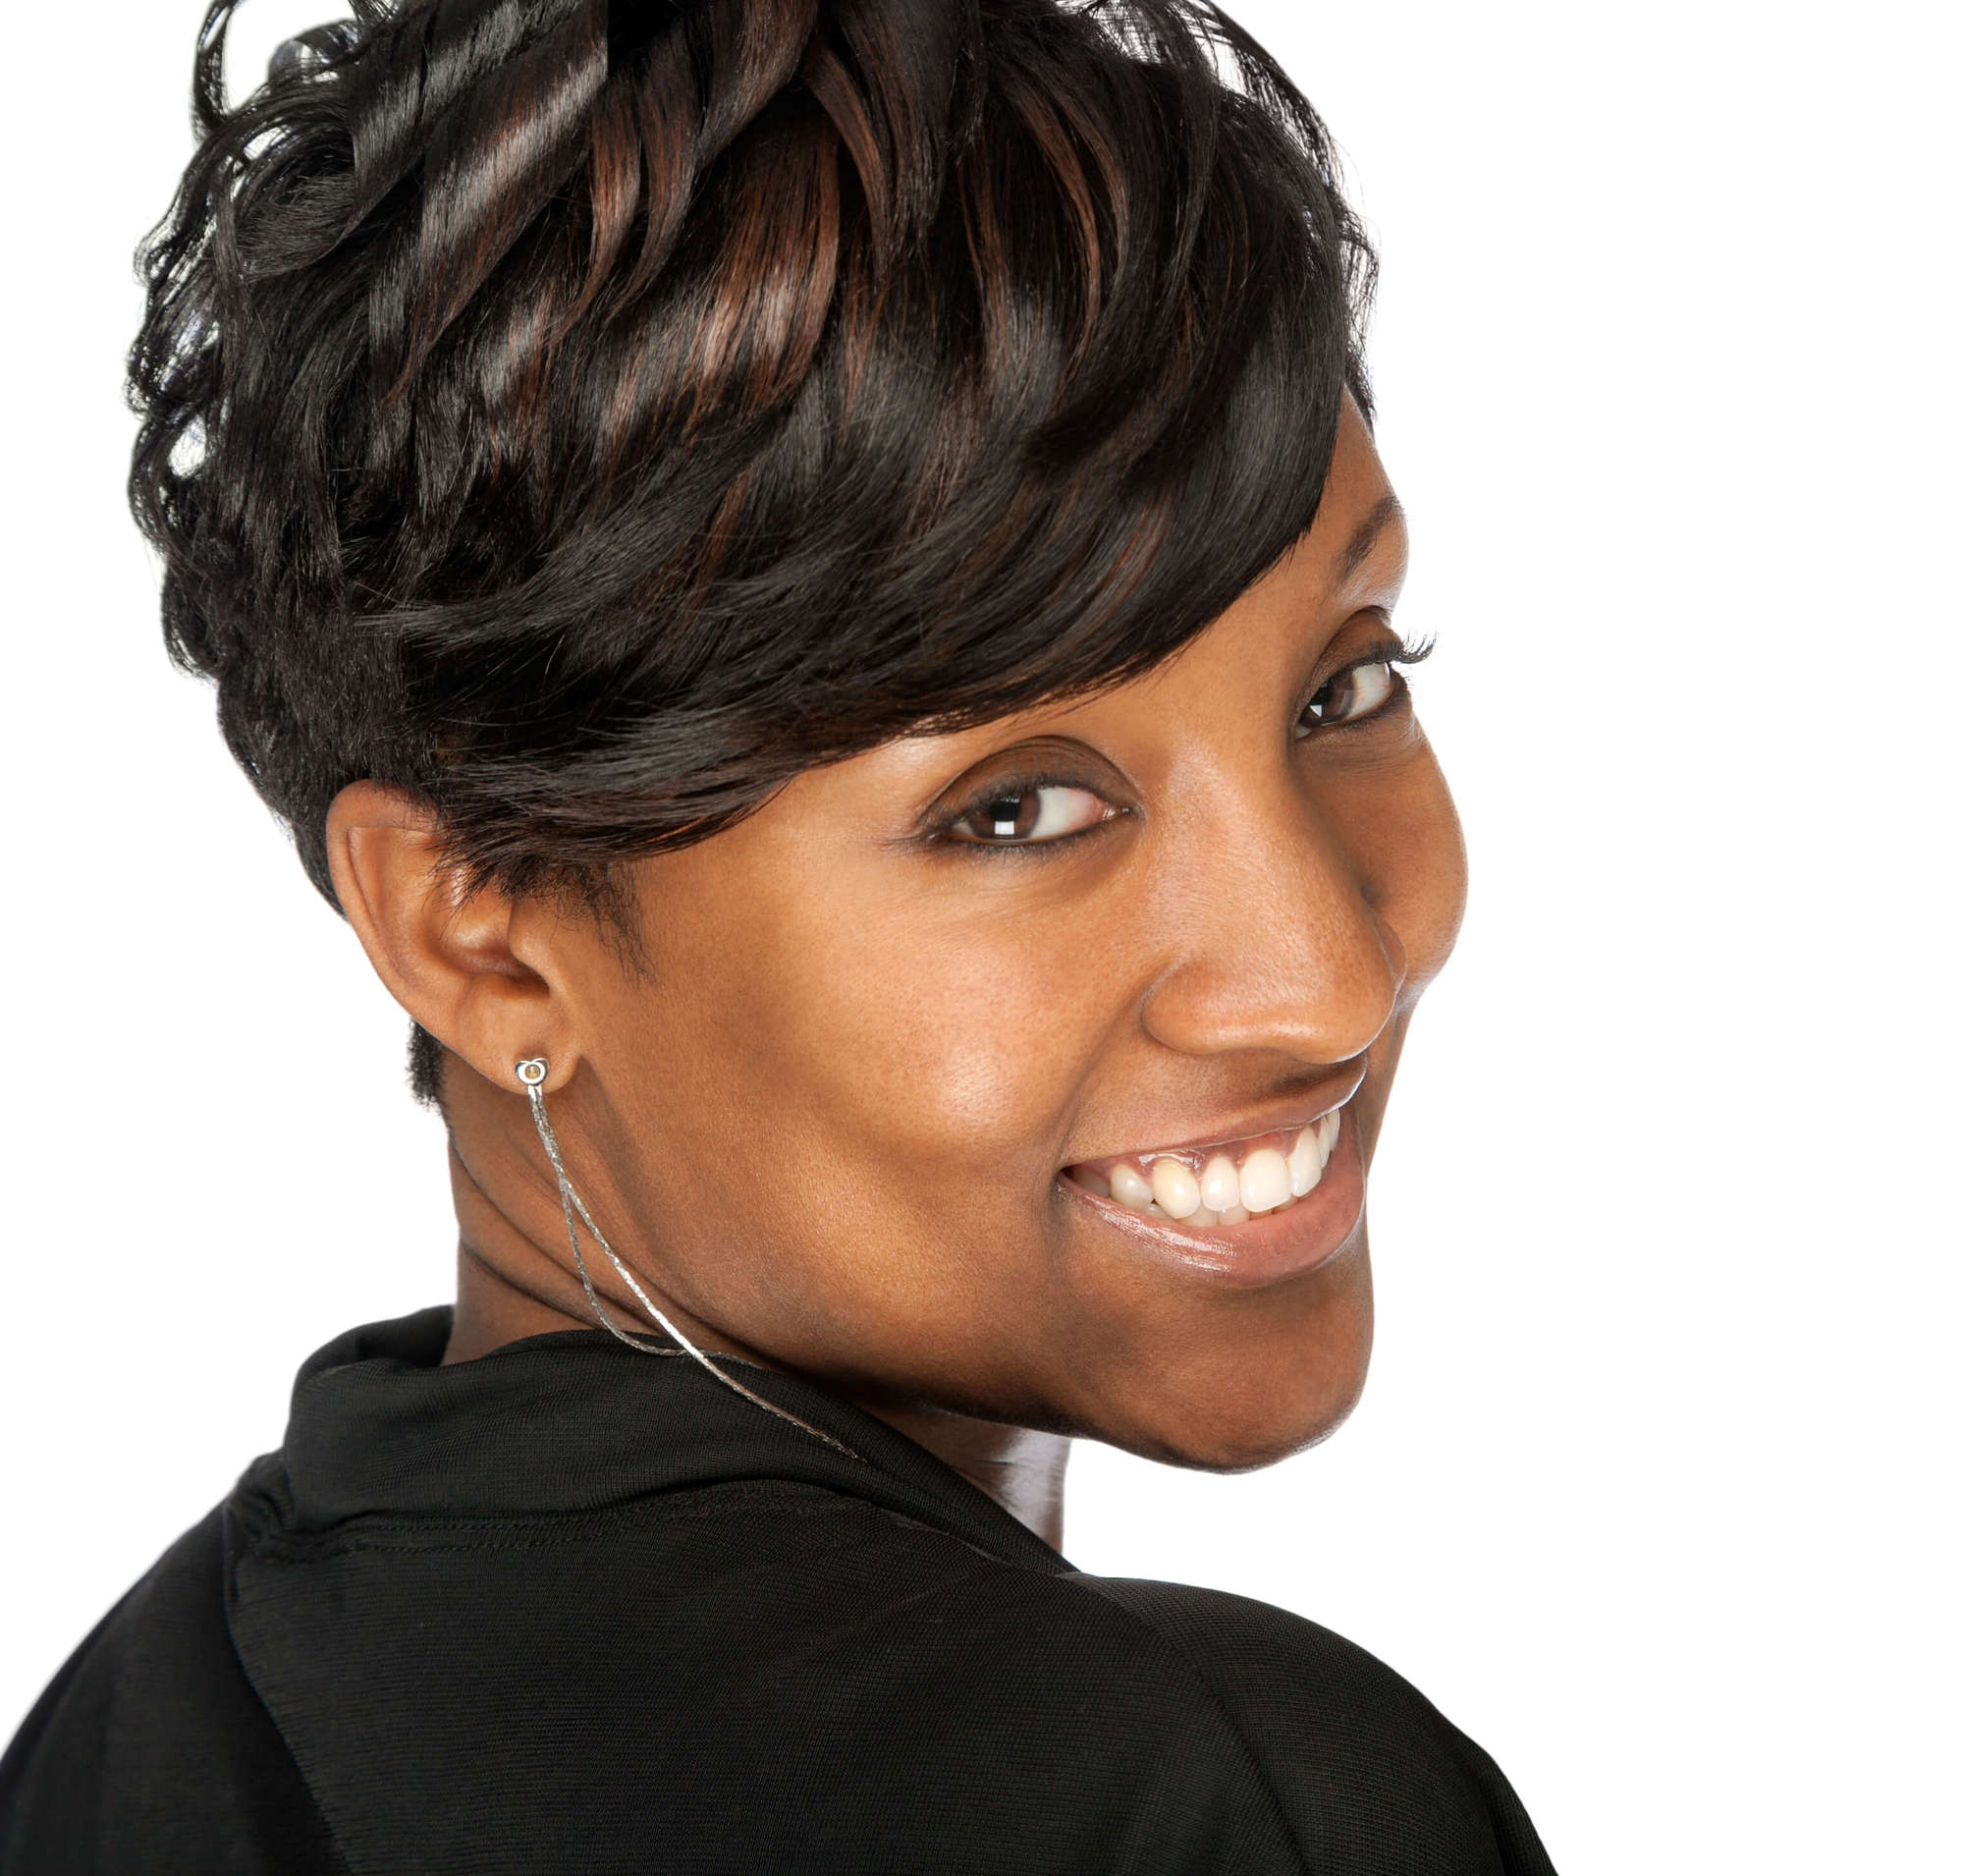 Short Weave Hairstyles Based On The Season S Latest Hair